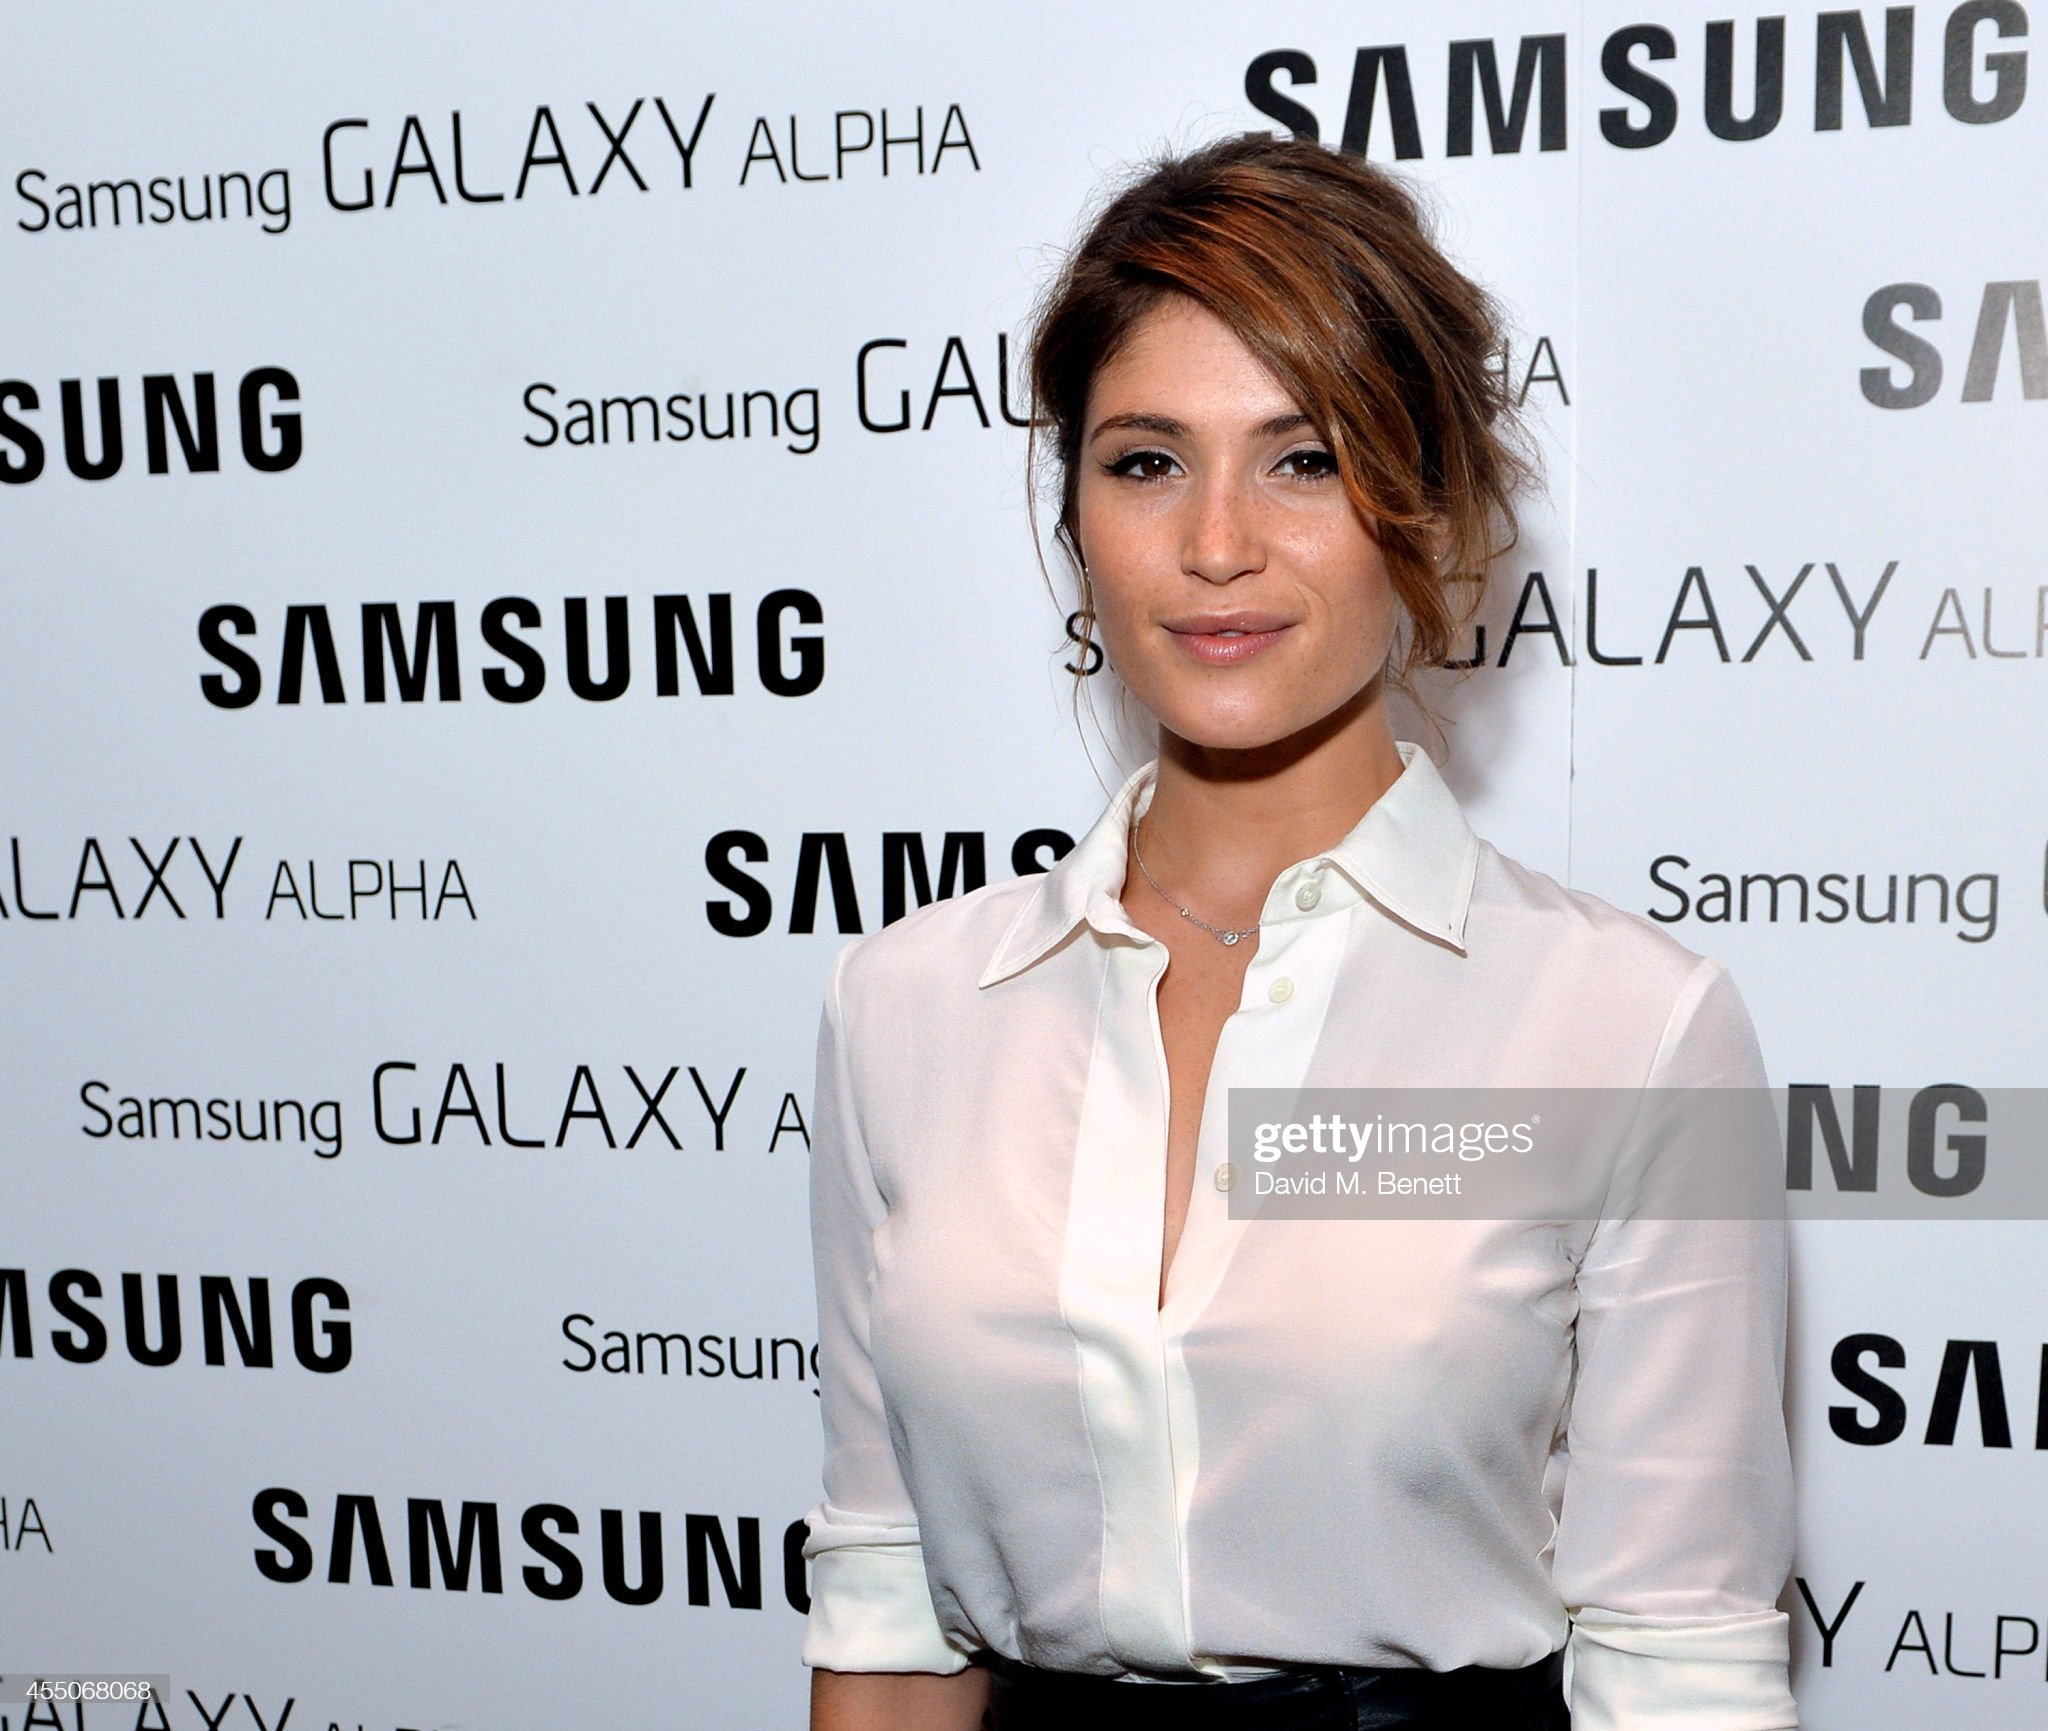 gemma-arterton-attends-the-samsung-galaxy-alpha-launch-event-at-the-picture-id455068068